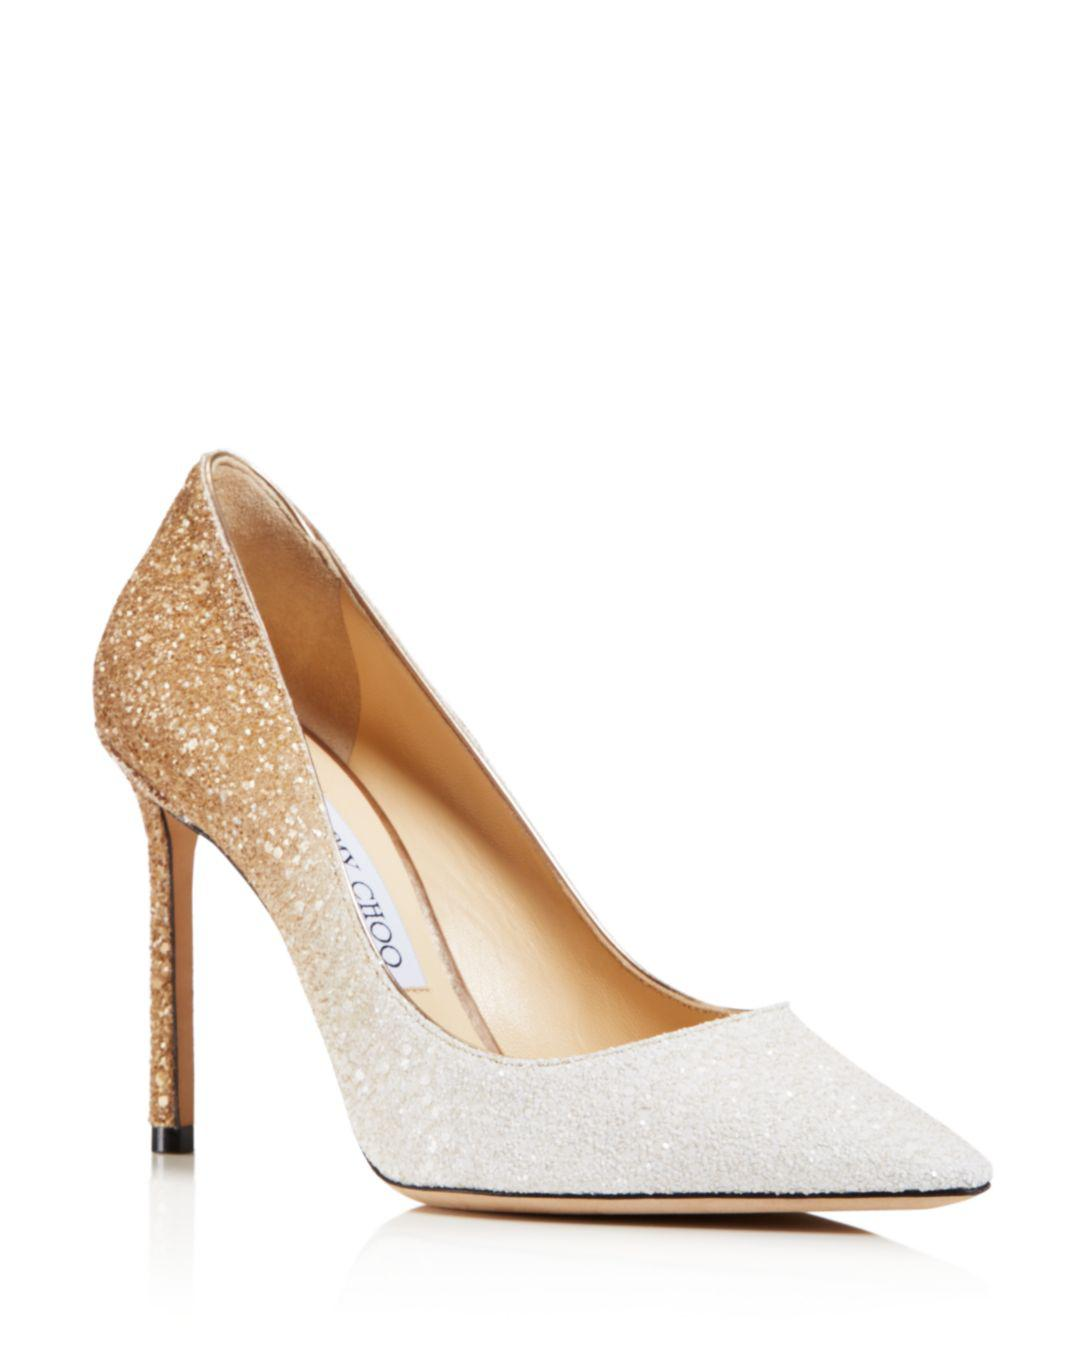 63cae8c21 Gallery. Previously sold at: Bergdorf Goodman, Bloomingdale's, Neiman  Marcus · Women's Jimmy Choo Glitter Shoes